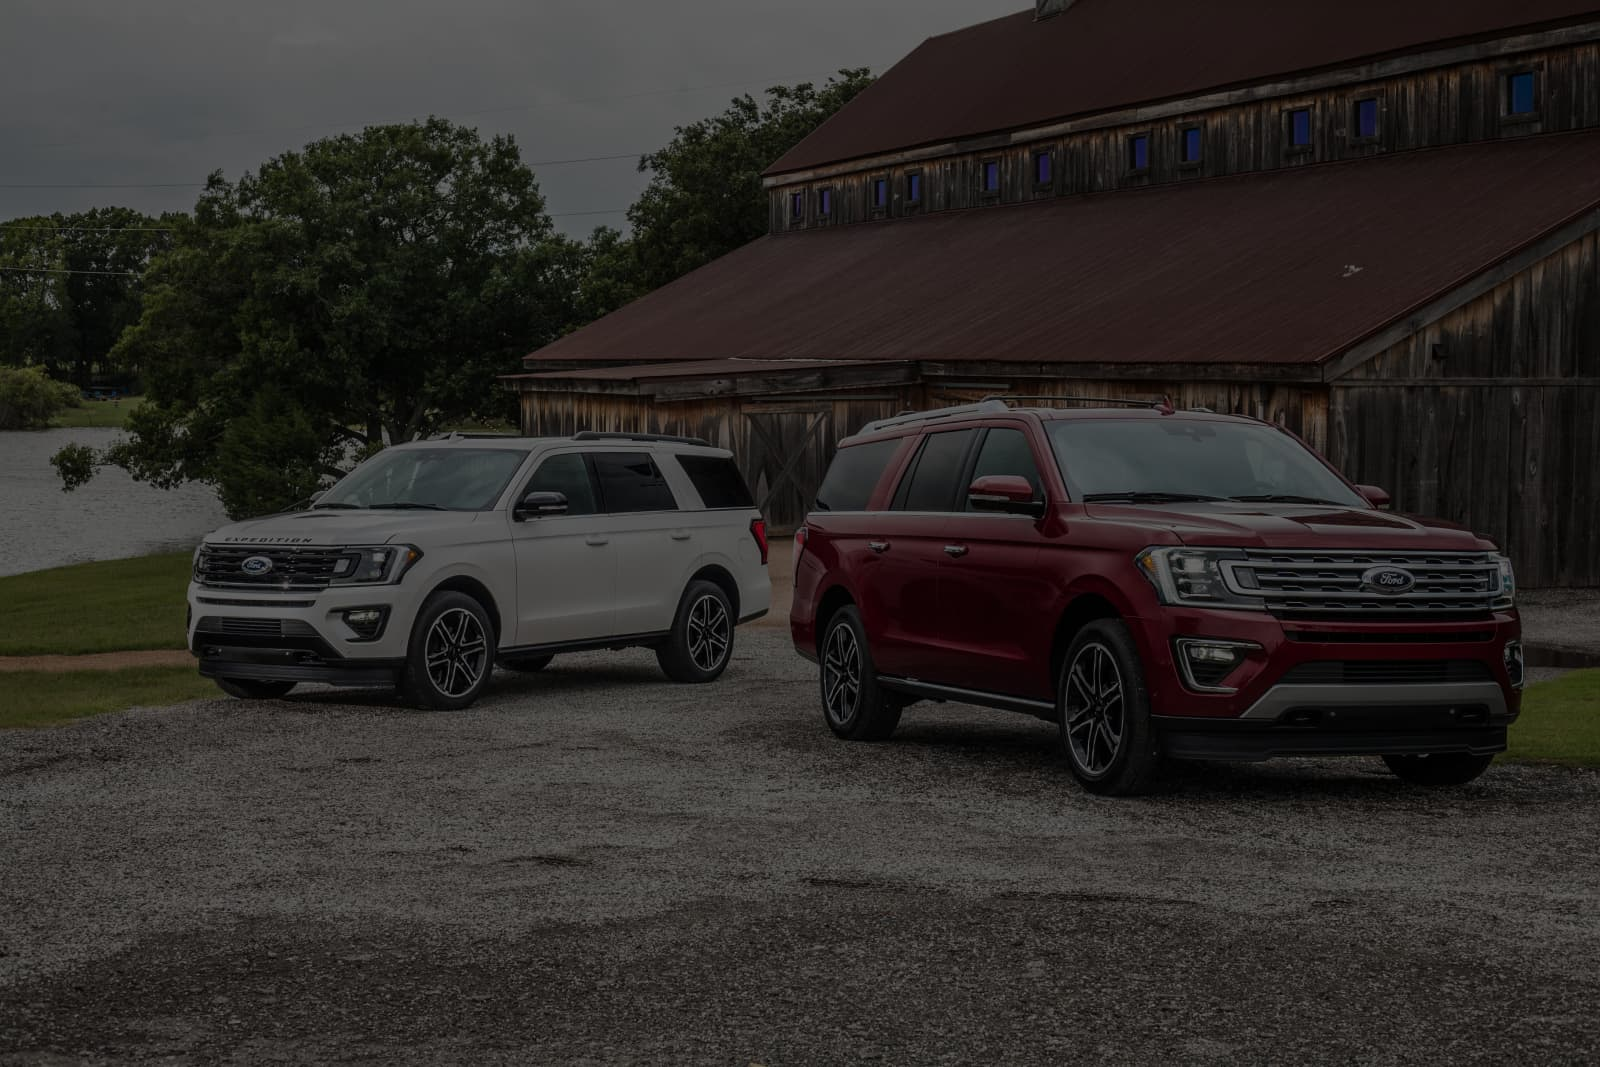 2019 Ford Expedition Model Research J C Lewis Ford Savannah